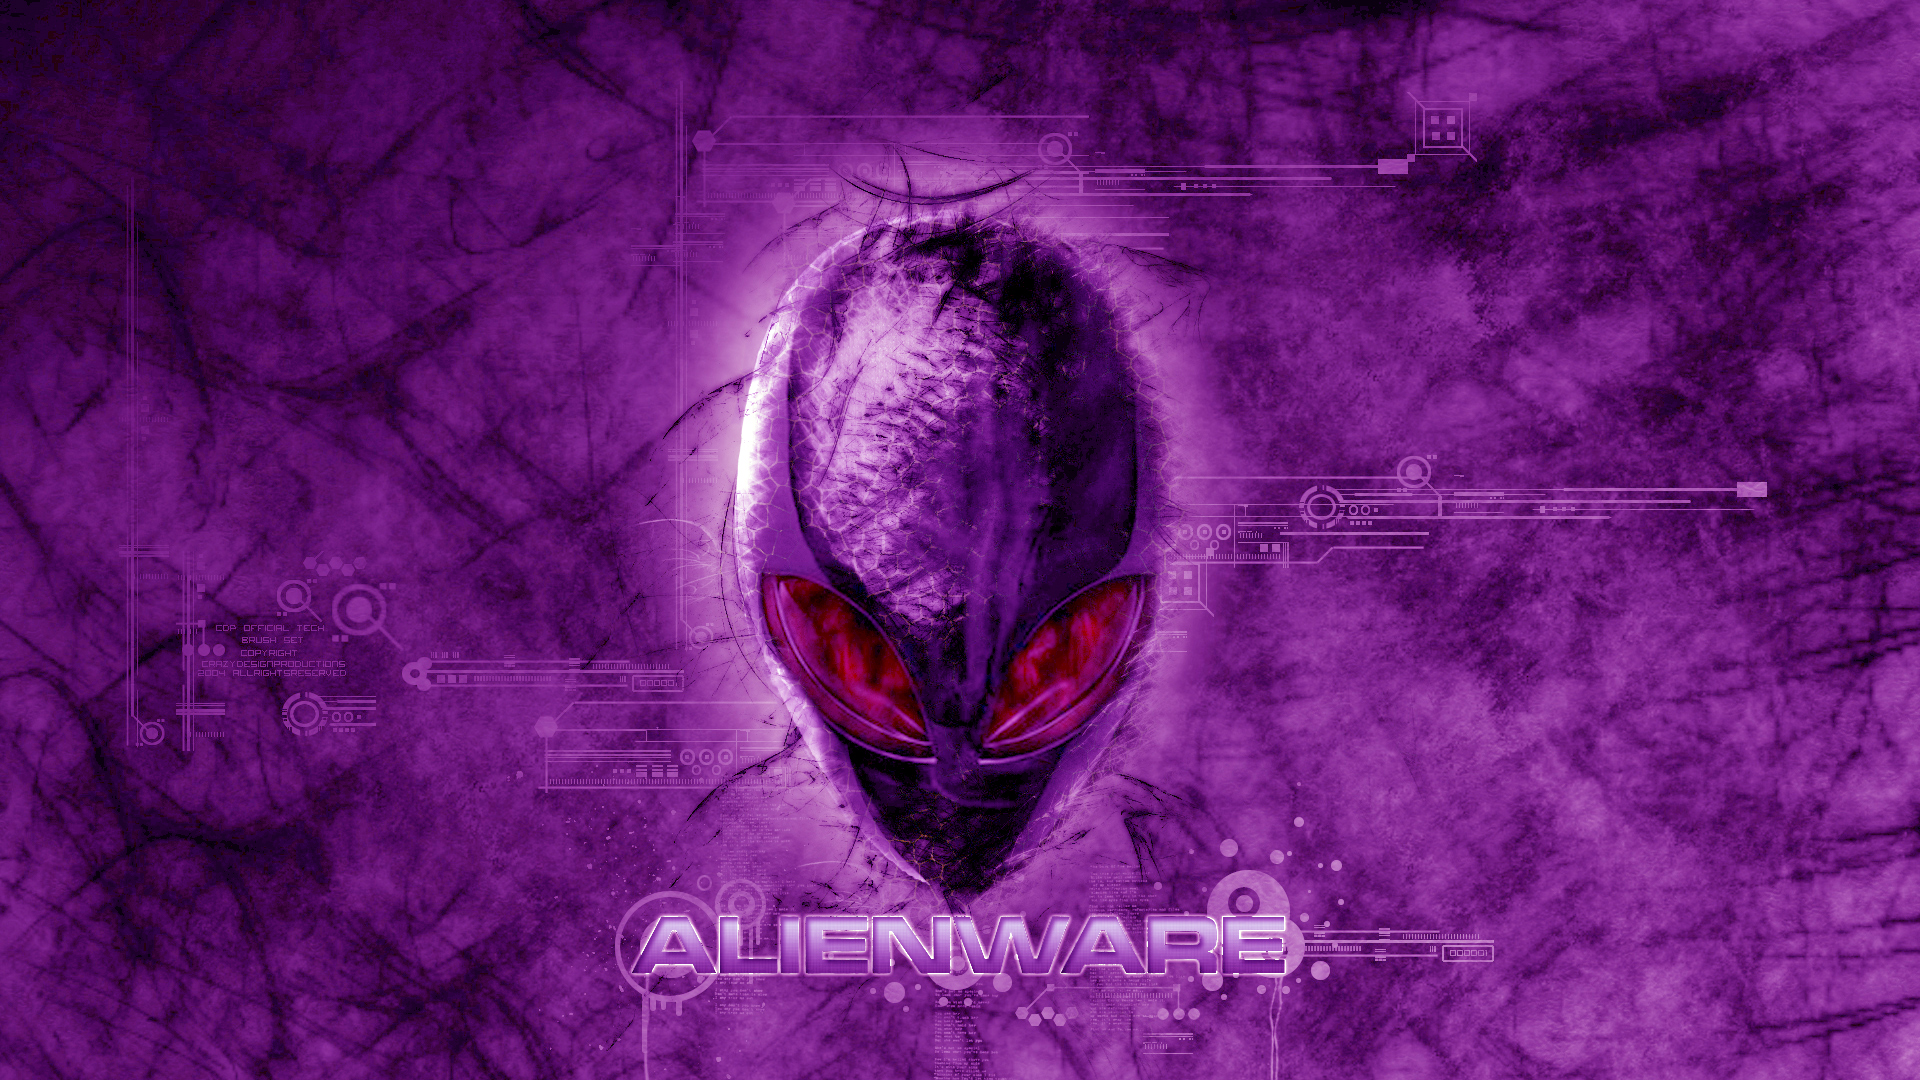 alienware dark violet red eyes logo hd 1920x1080 1080p wallpaper 1920x1080